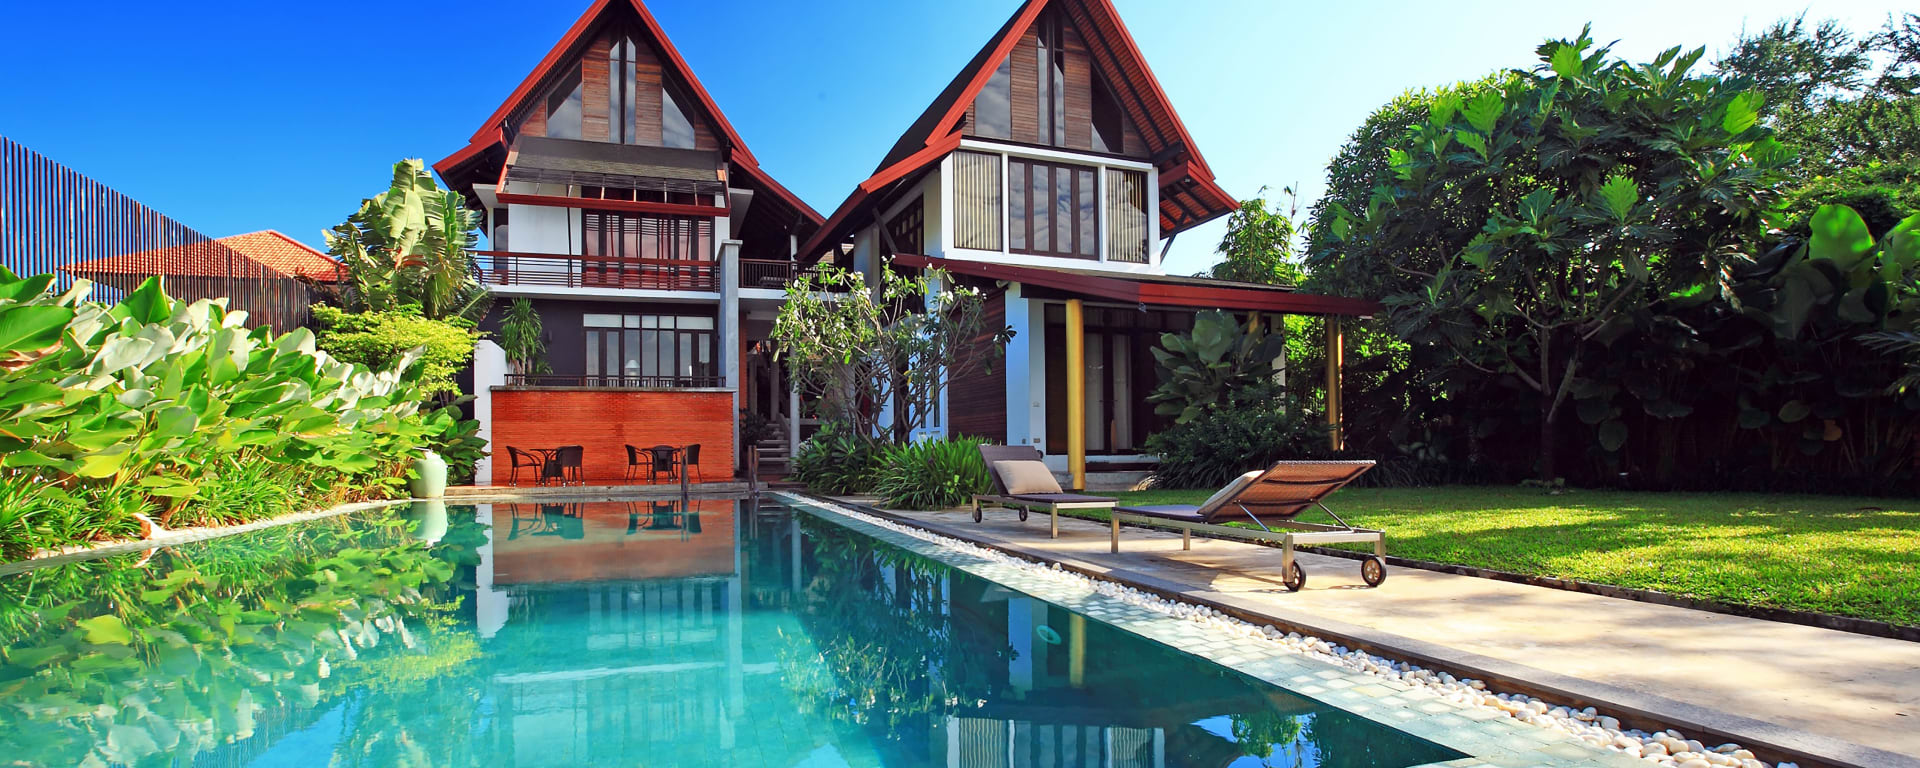 IUDIA on the River in Zentralthailand: Ayutthaya iuDia A Boutique Hotel On The River